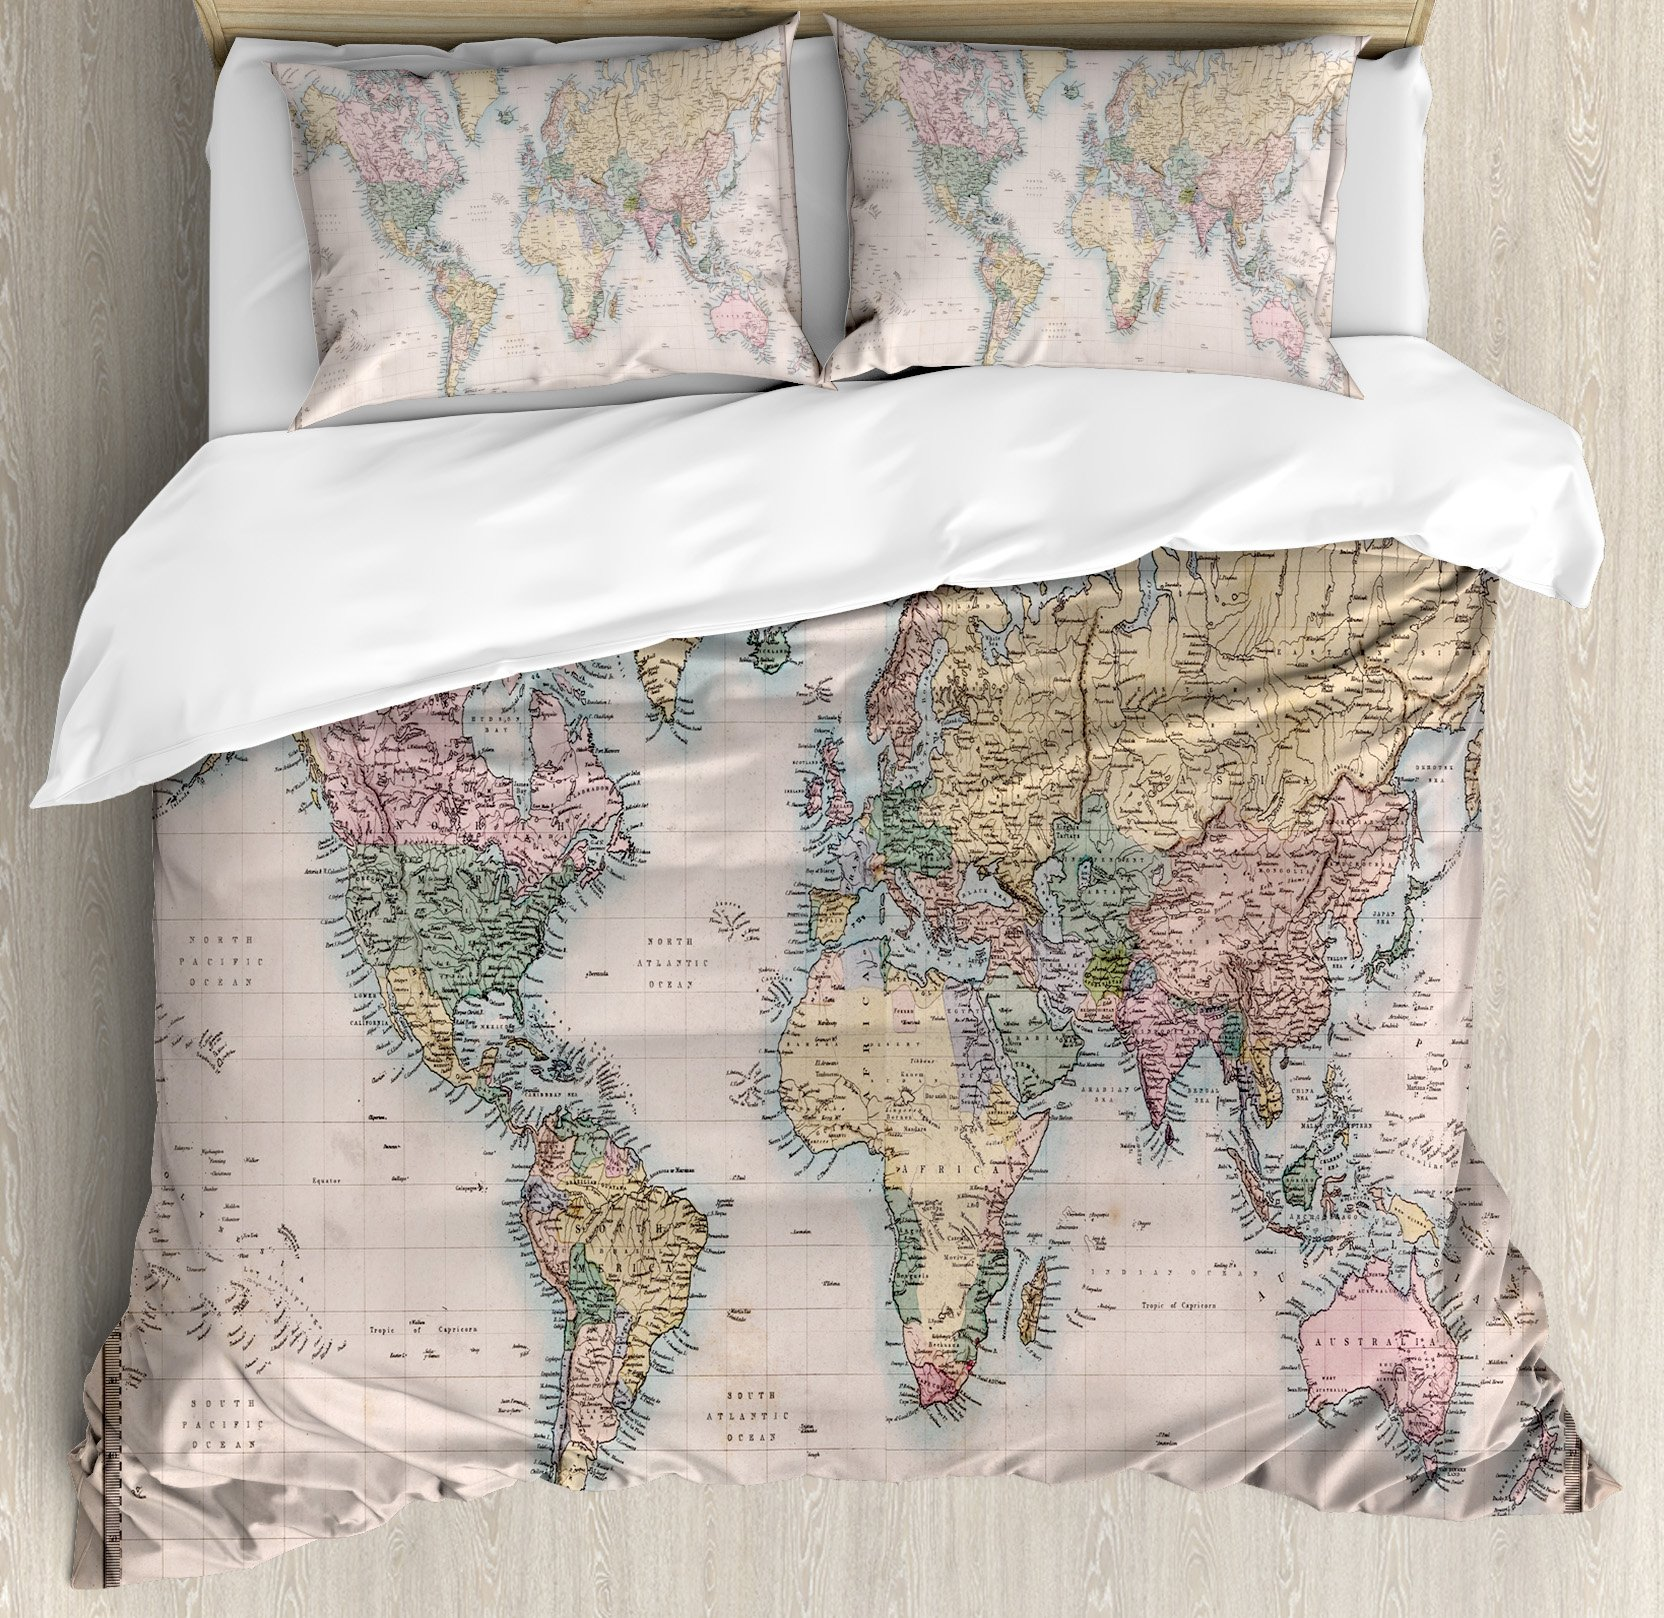 Ambesonne World Map Duvet Cover Set King Size, Original Old Hand Colored Map of the World Anthique Chart for Old Emperors Print, Decorative 3 Piece Bedding Set with 2 Pillow Shams, Multicolor